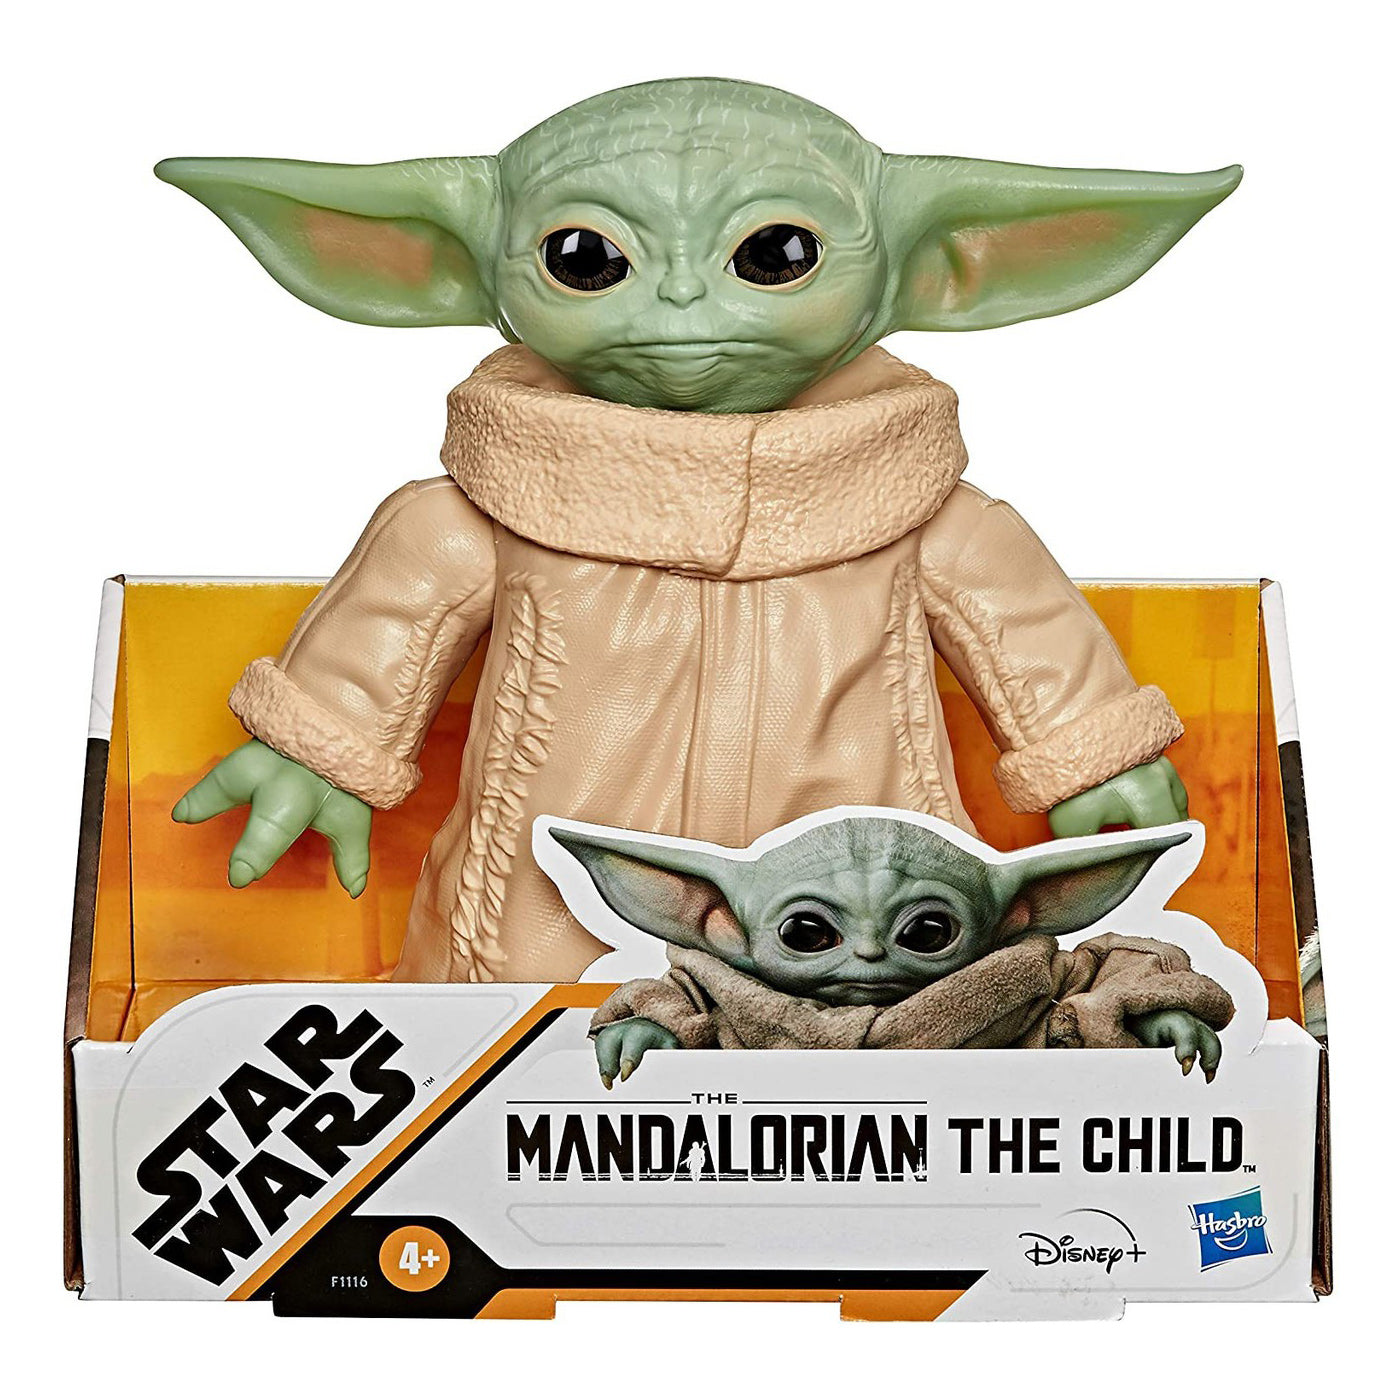 Star Wars The Mandalorian The Child 6 1/2-Inch Action Figure